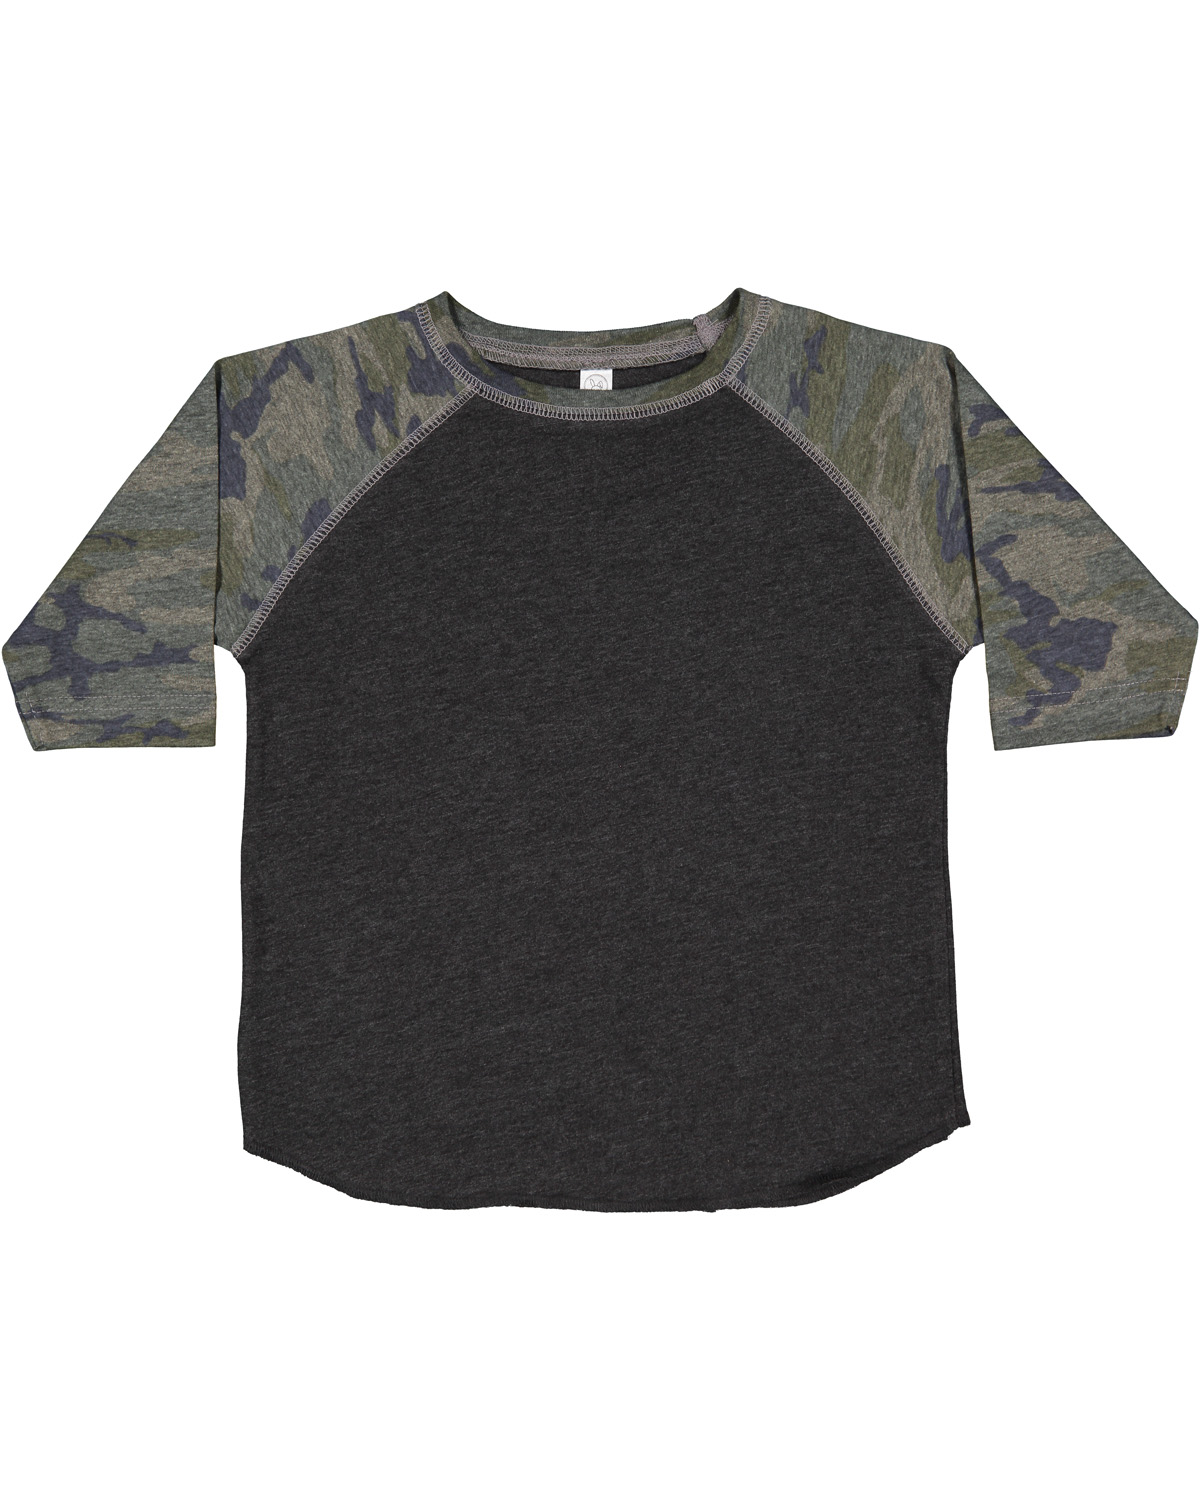 Barbade Drapeau Couleurs police Barbadiens Pays football BRB Men/'s V-Neck Ringer tee